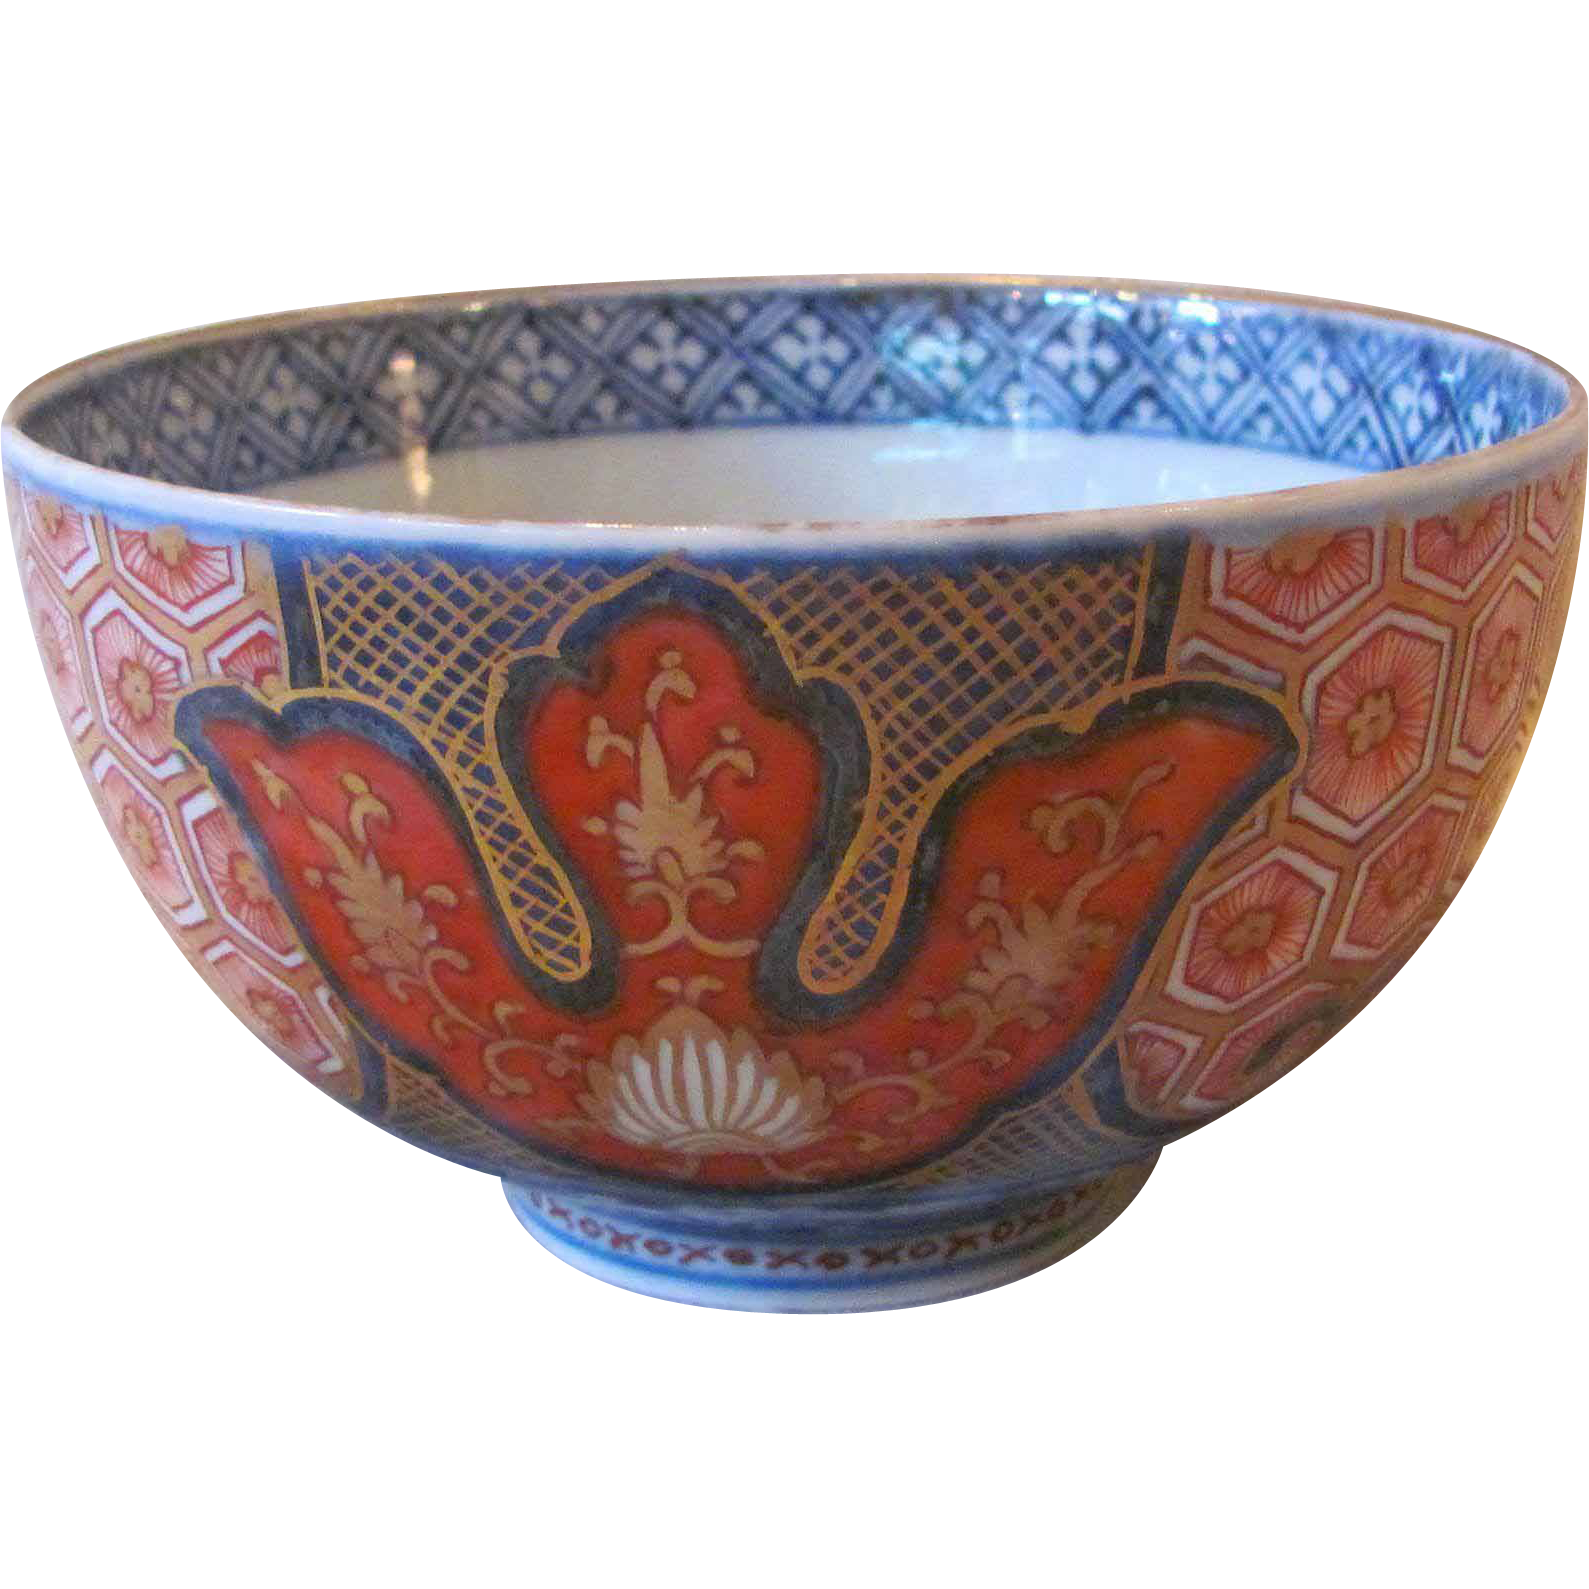 Antique Japanese Imari Bowl Meiji Period Circa 1900